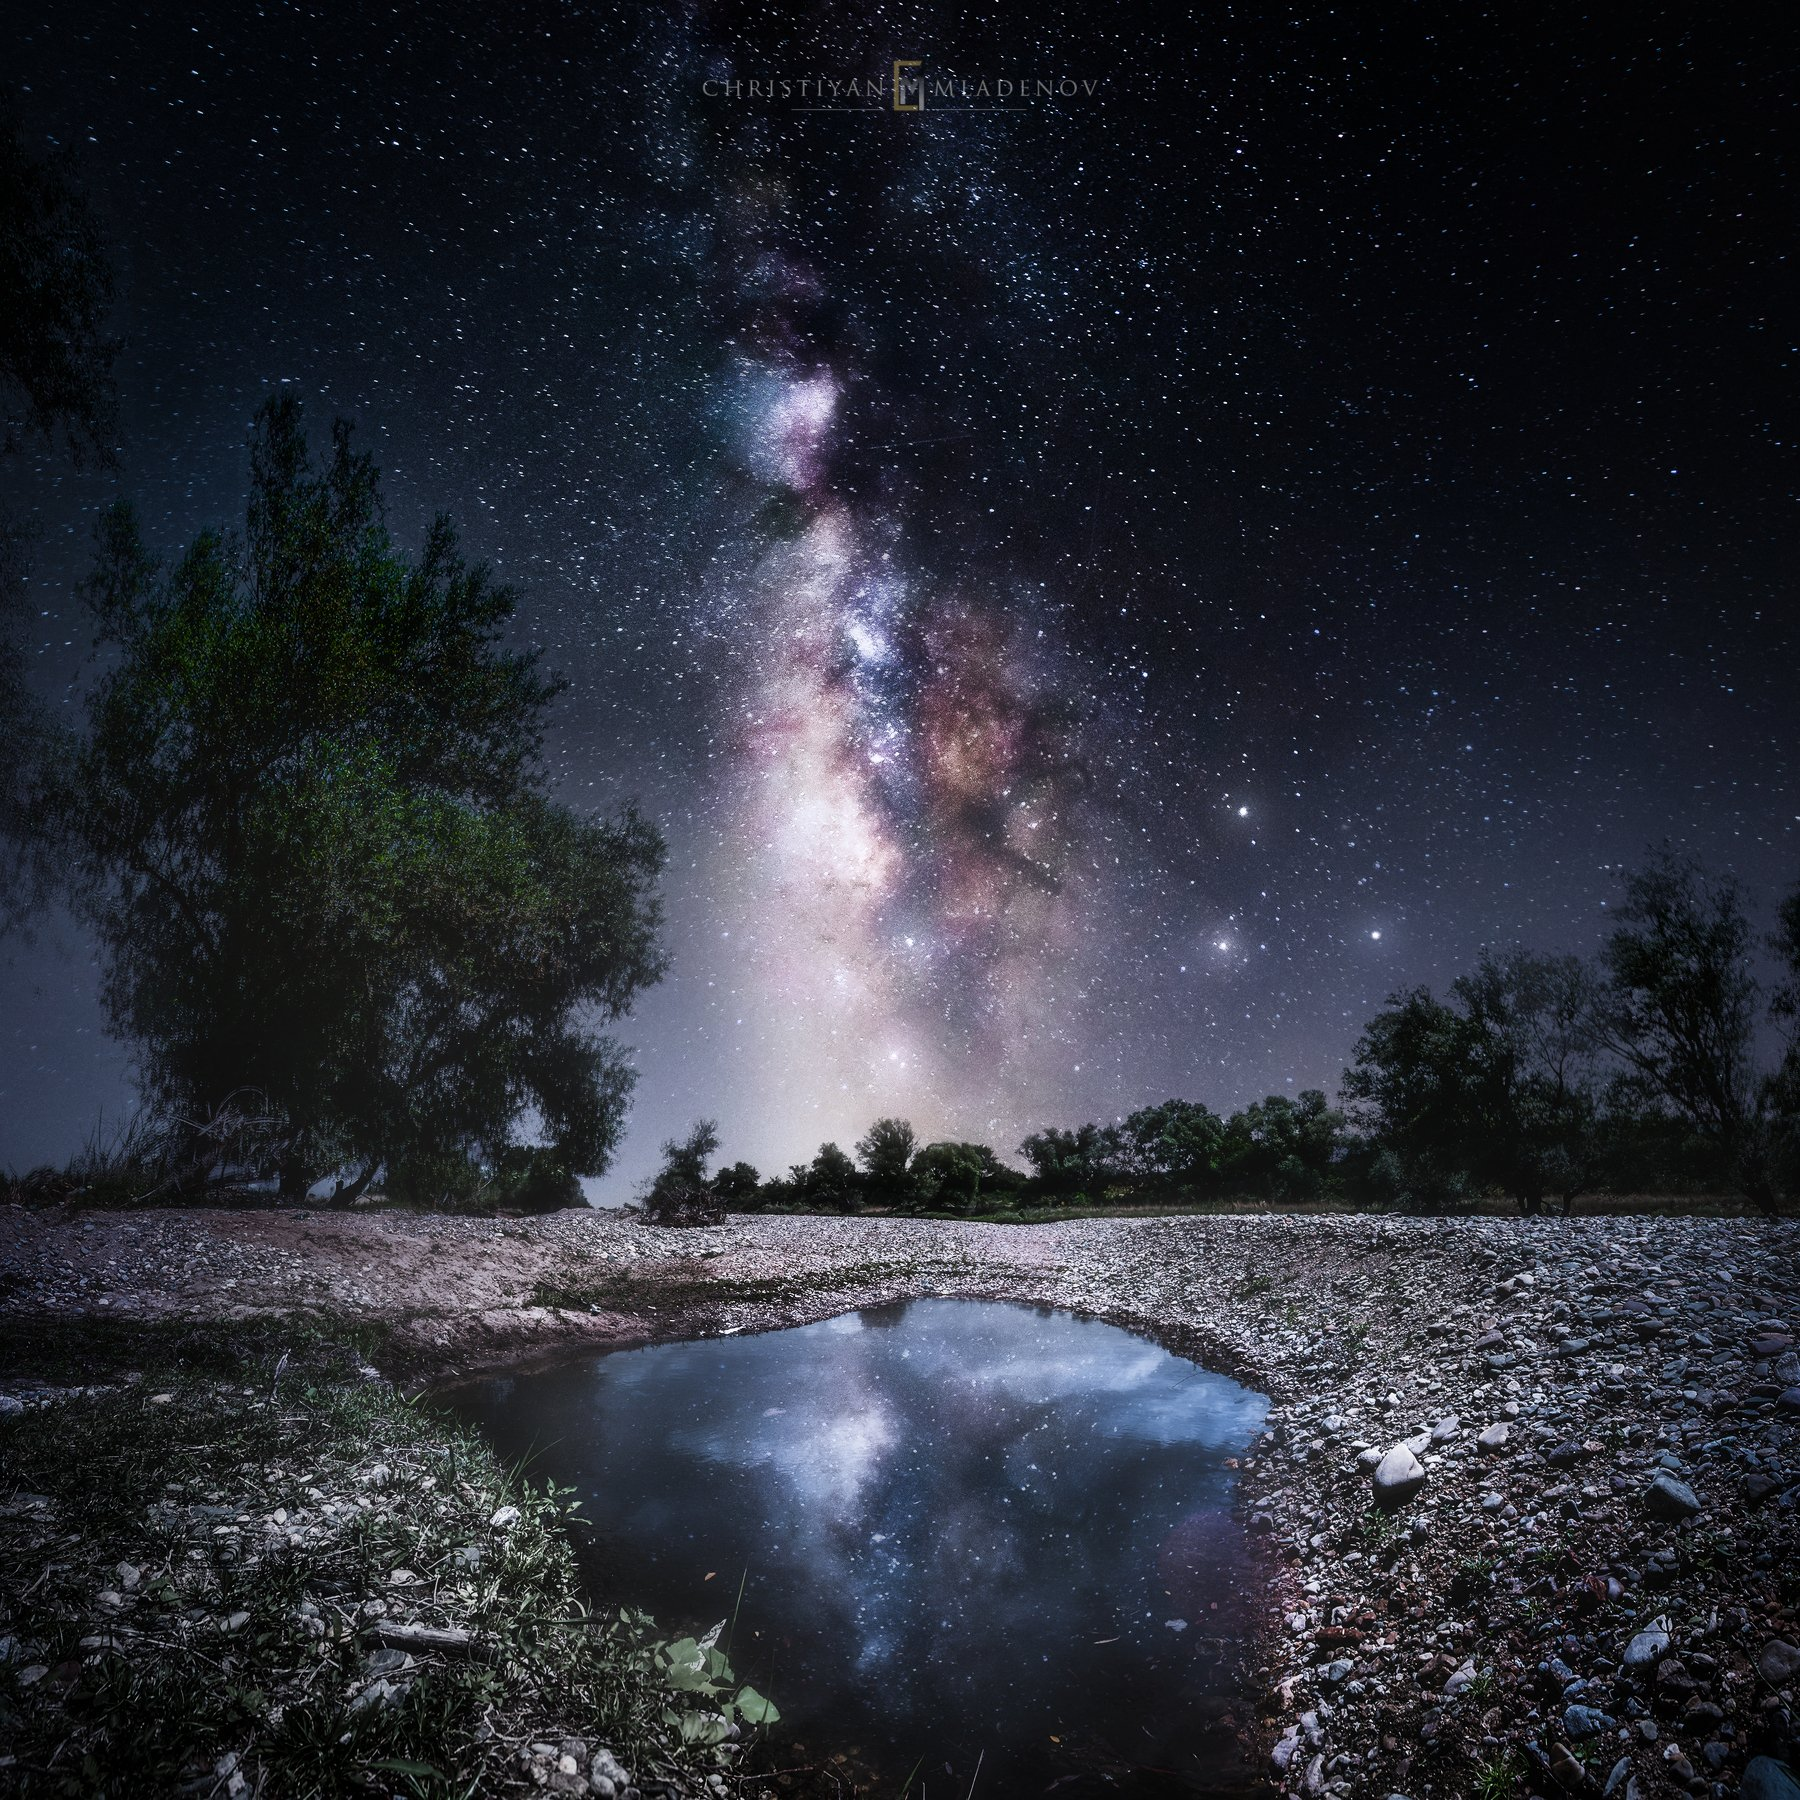 astrophotography, astronomy, galaxy, milky way, nightscape, night, sky, stars, long exposure, nature, bulgaria, space, panorama, crater, reflection,, Кристиян Младенов